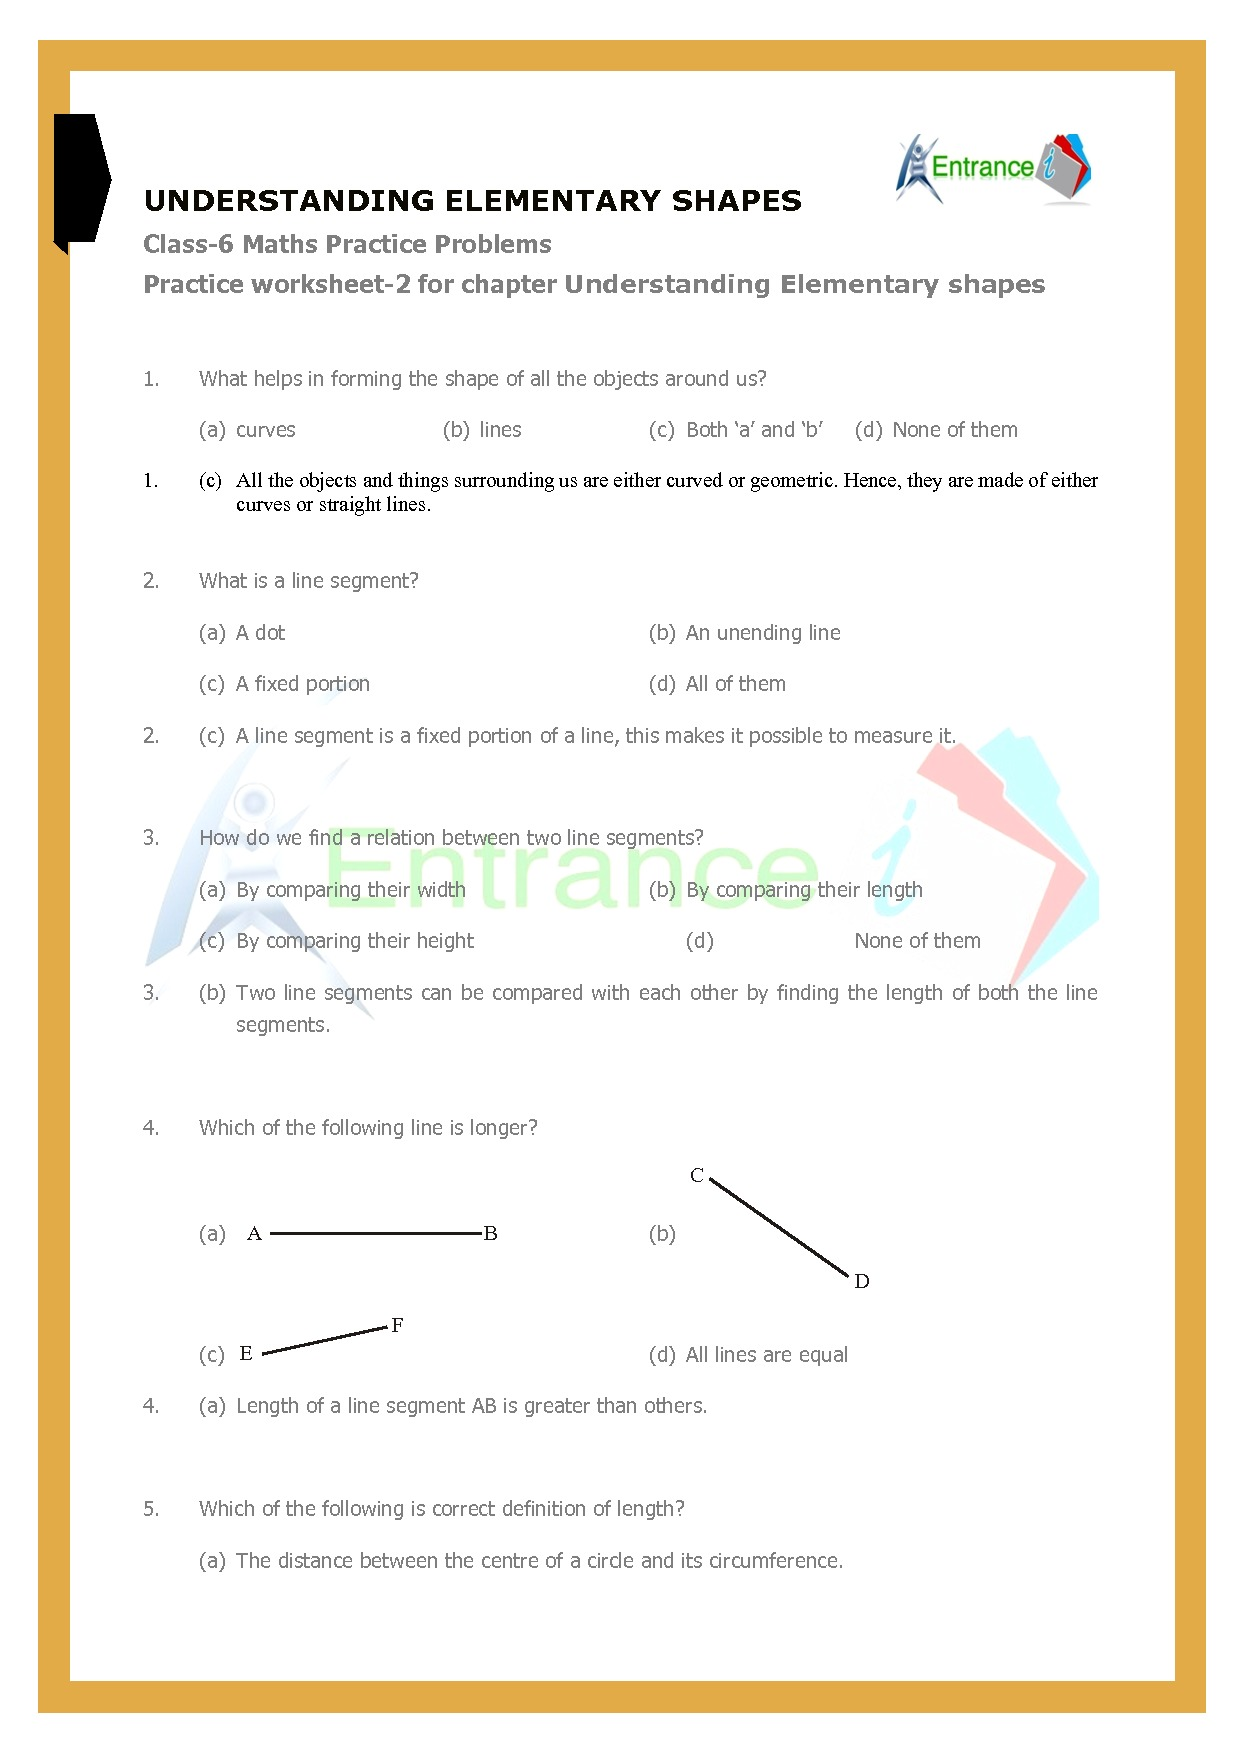 Worksheet 2 For Chapter Understanding Elementary Shapes